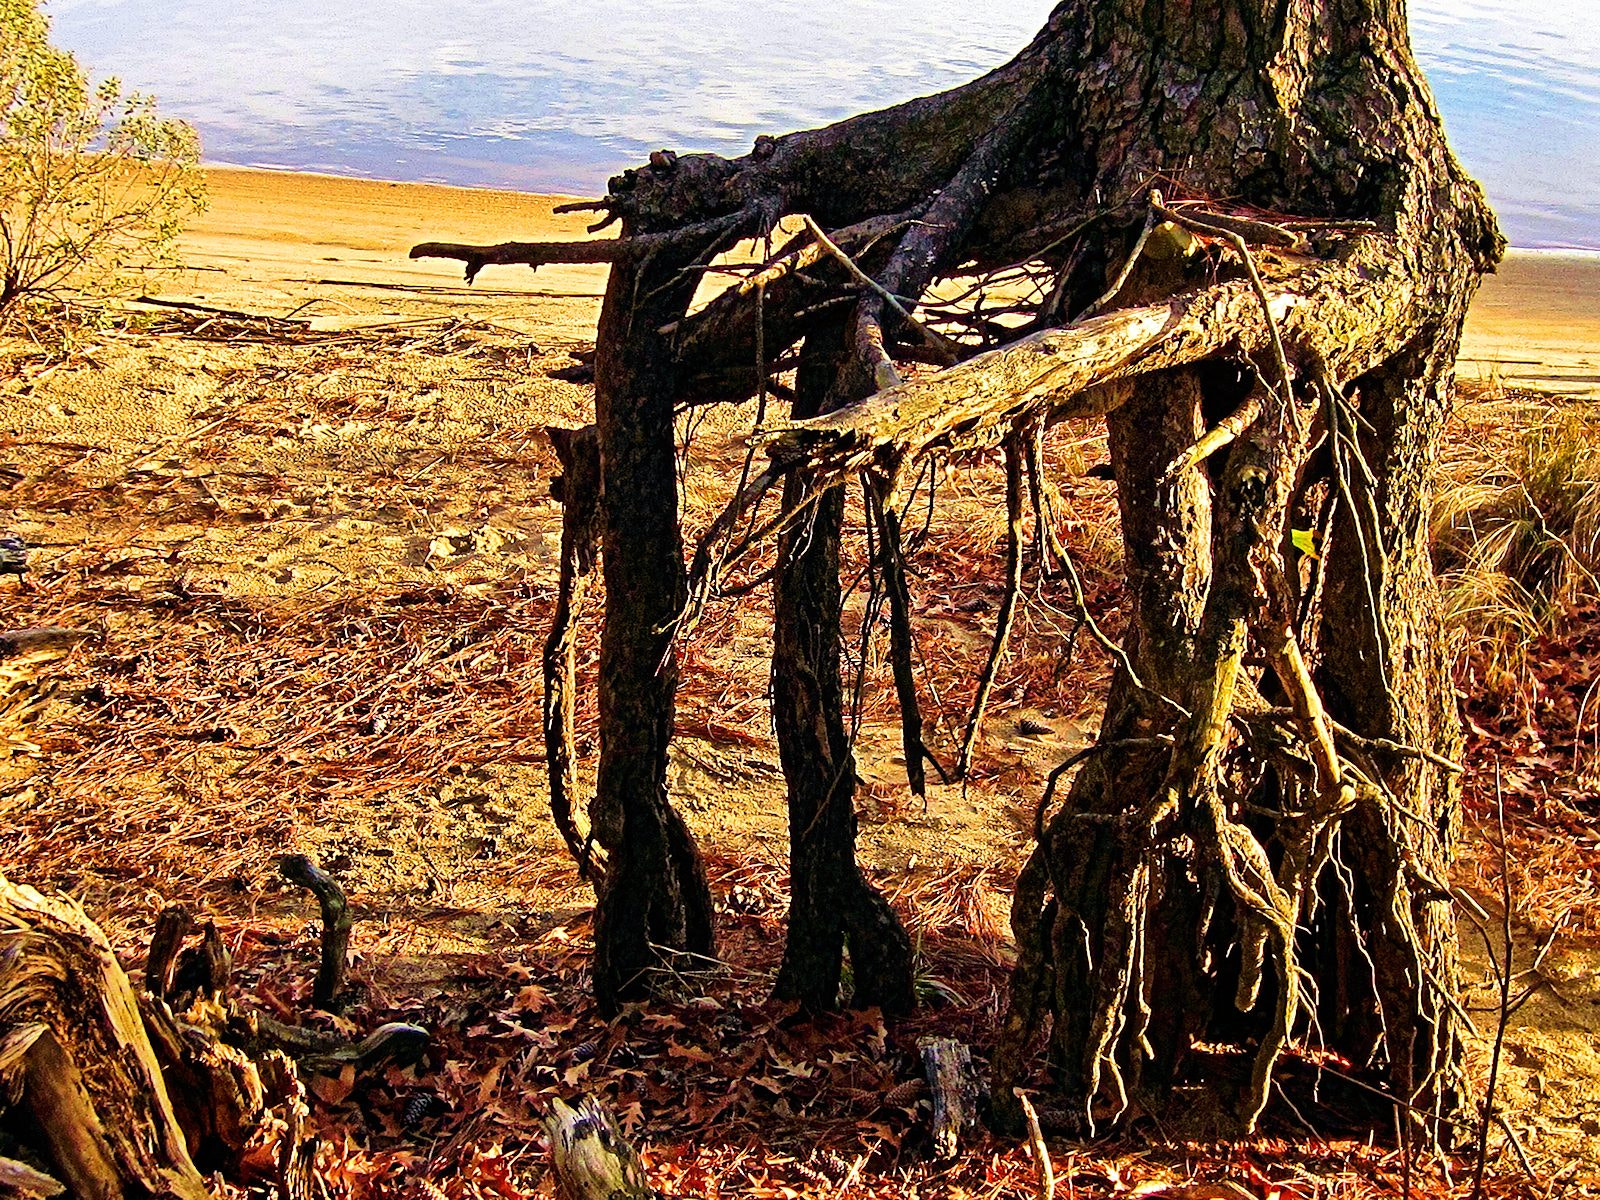 Photograph Rooted Erosion by SusanAnn Avery on 500px